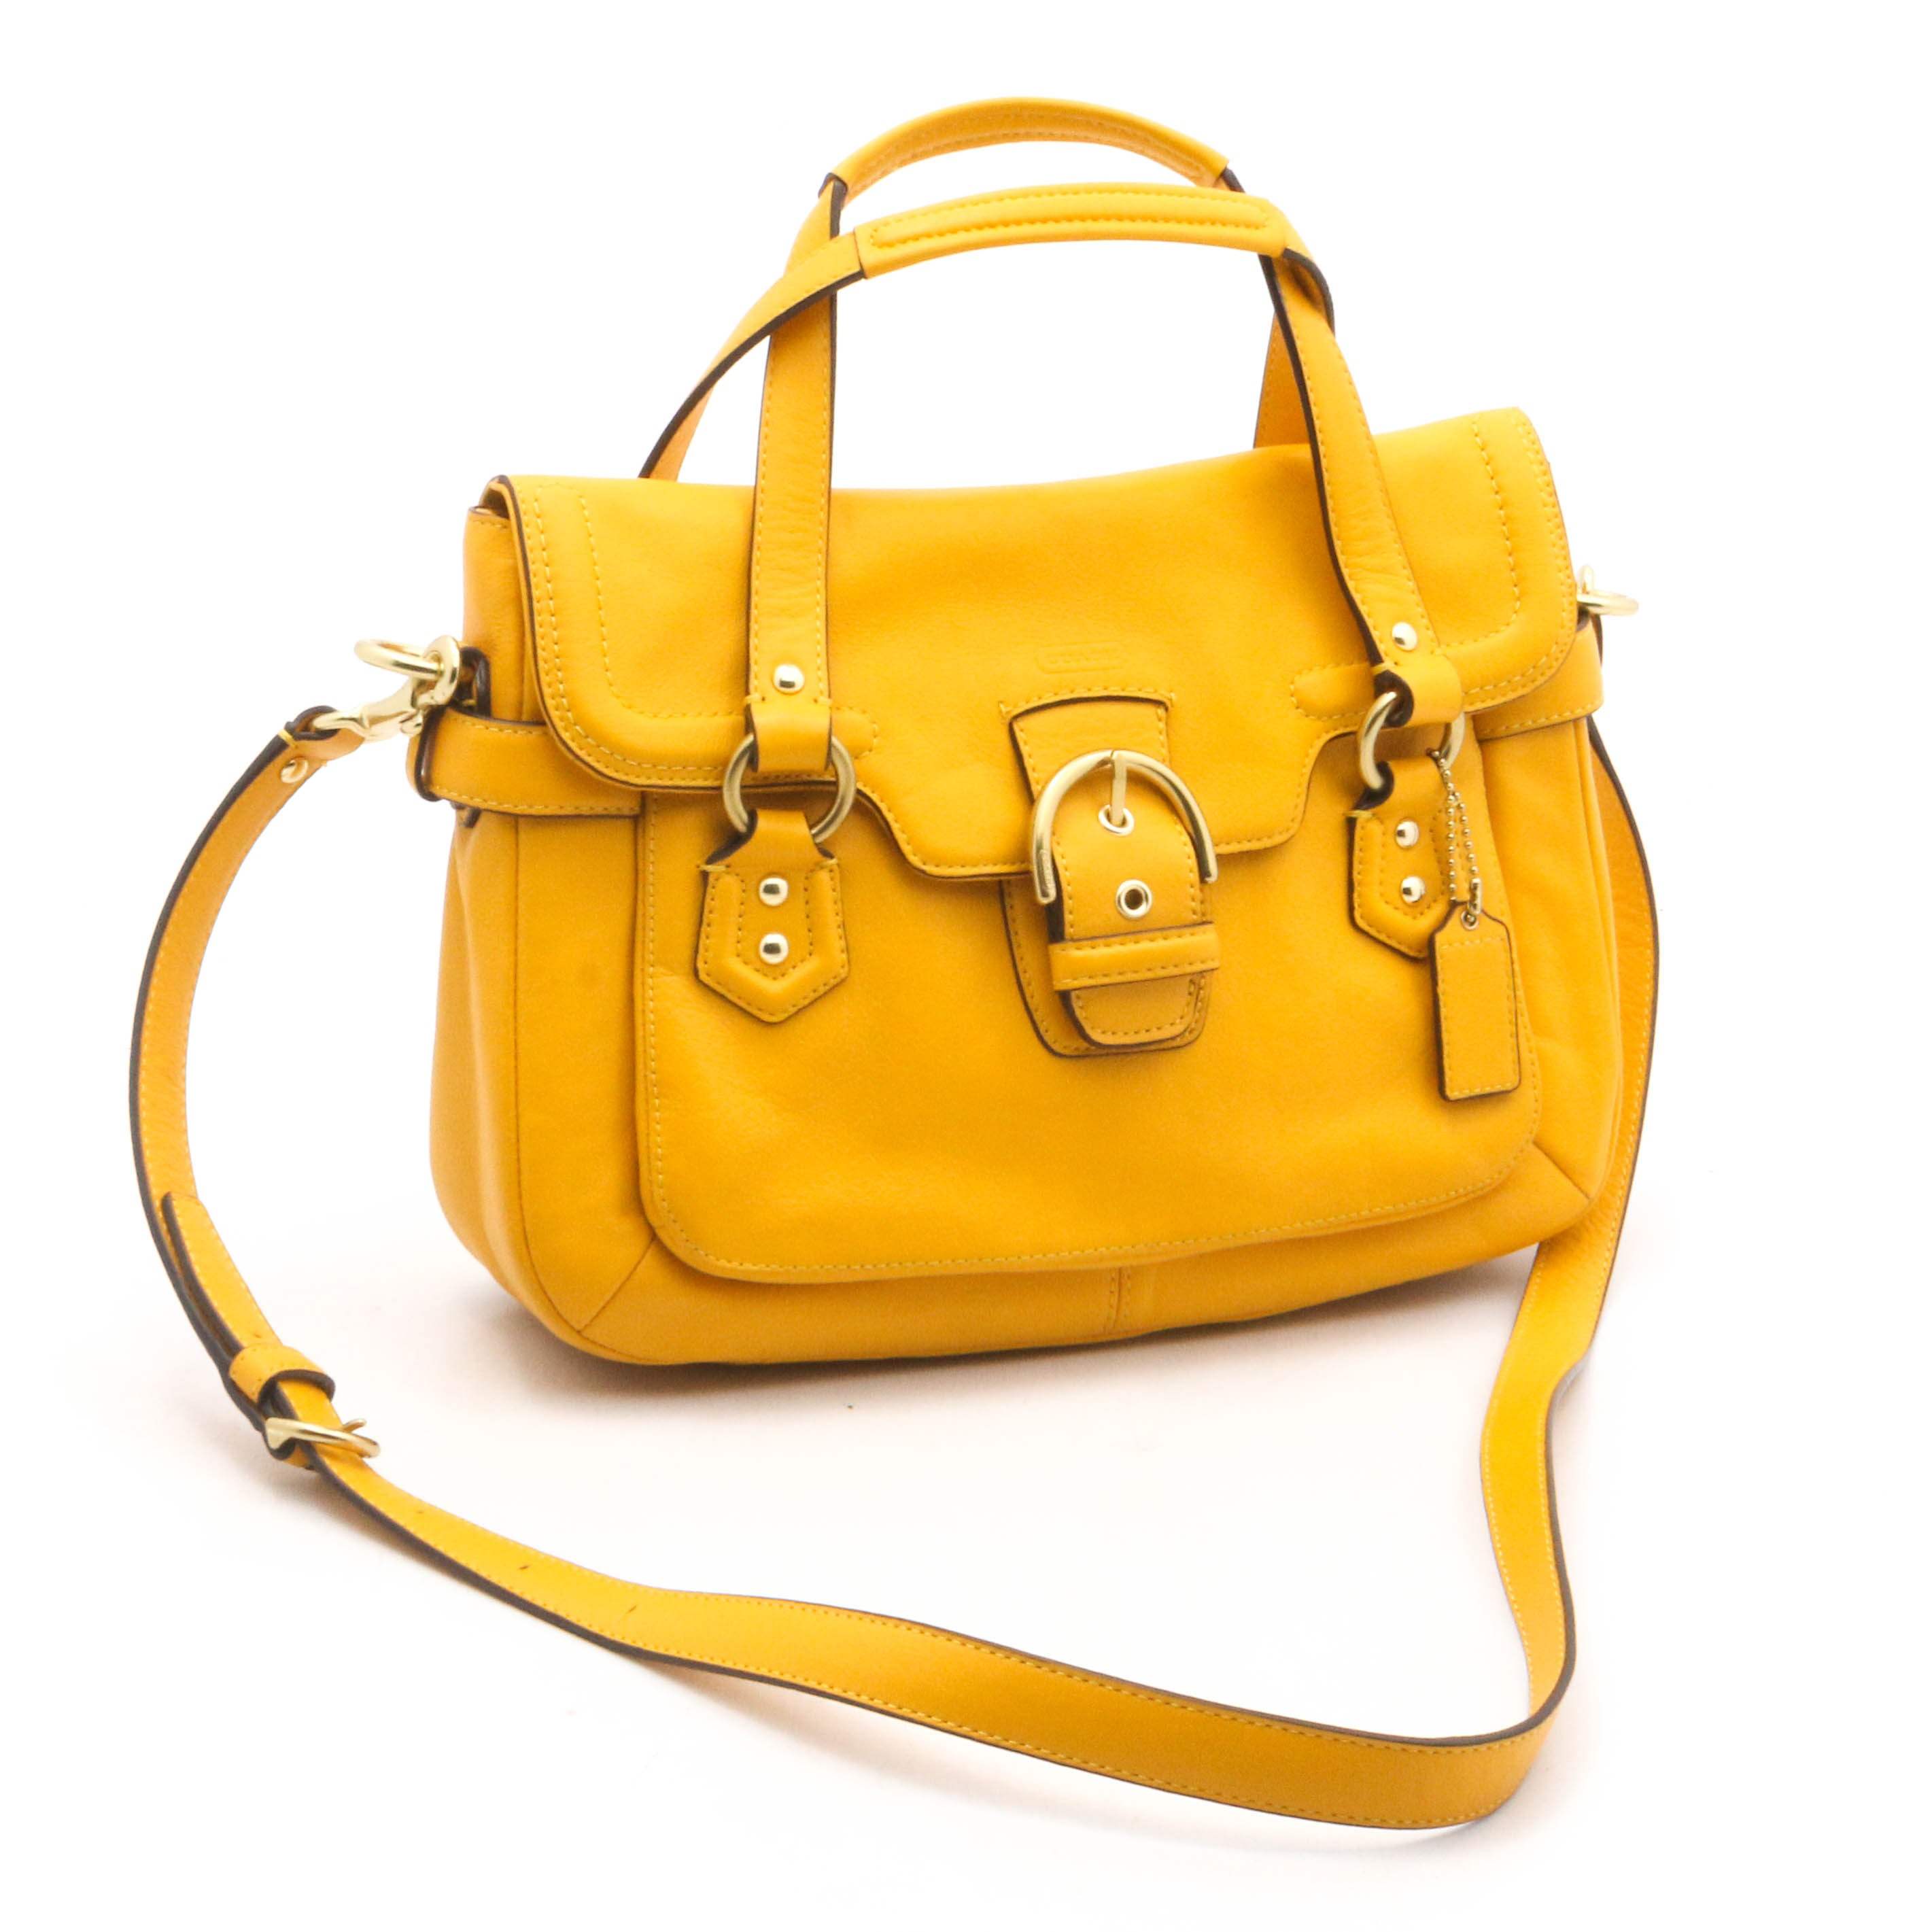 Coach Campbell Yellow Leather Convertible Handbag